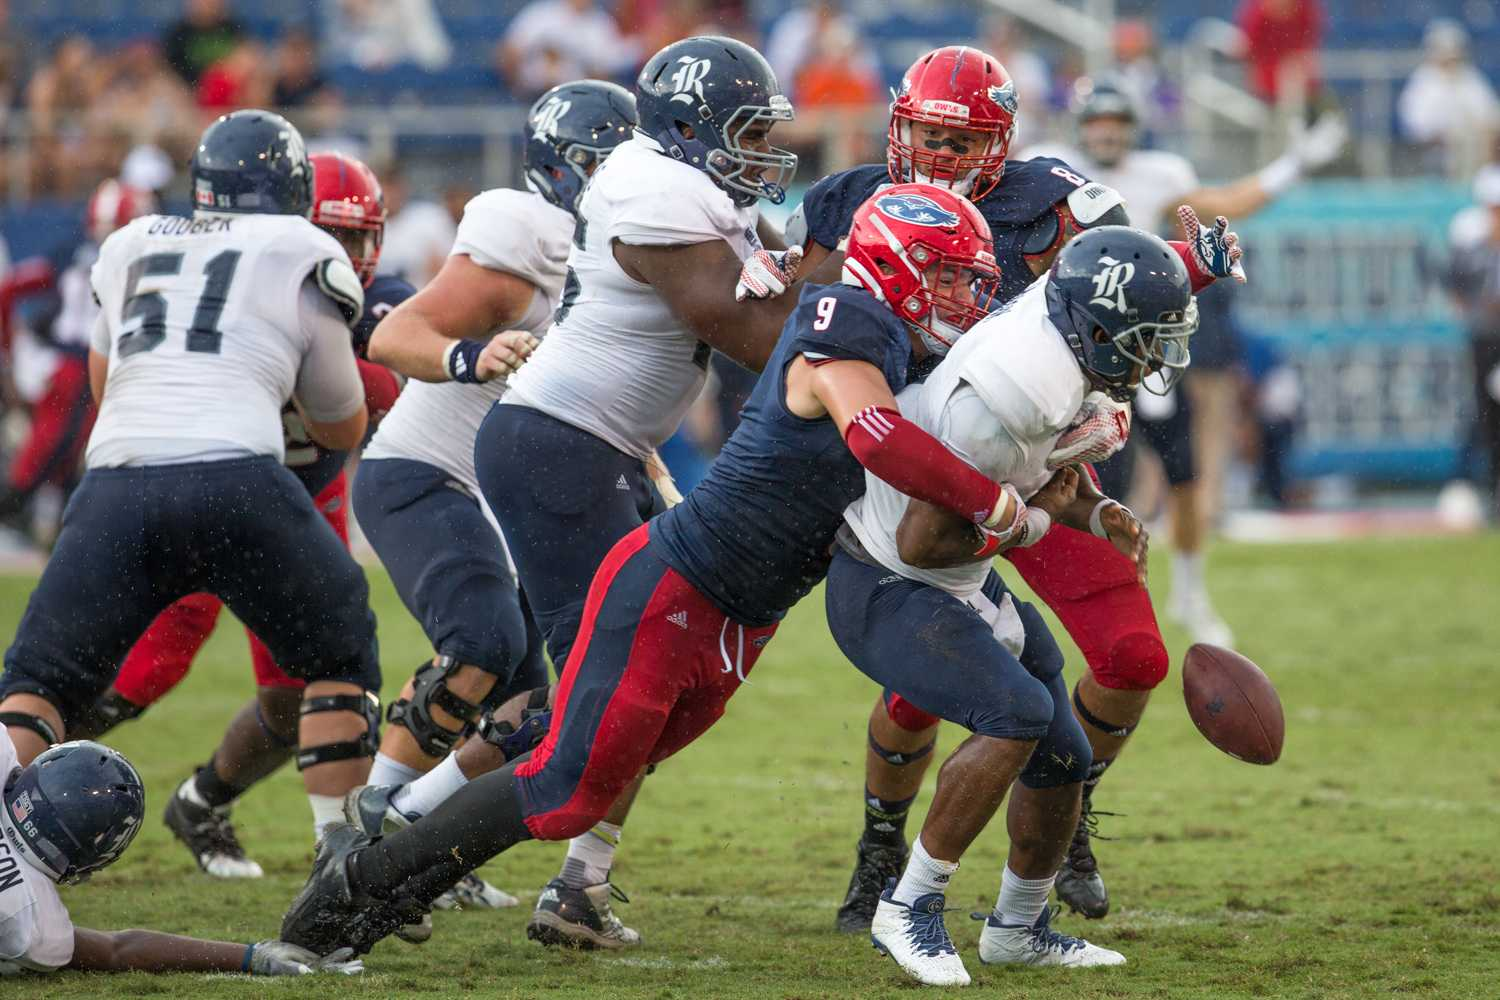 Junior defensive end Trey Hendrickson (9) sacks Rice quarterback Driphus Jackson (6). Brandon Harrington | Photo Editor